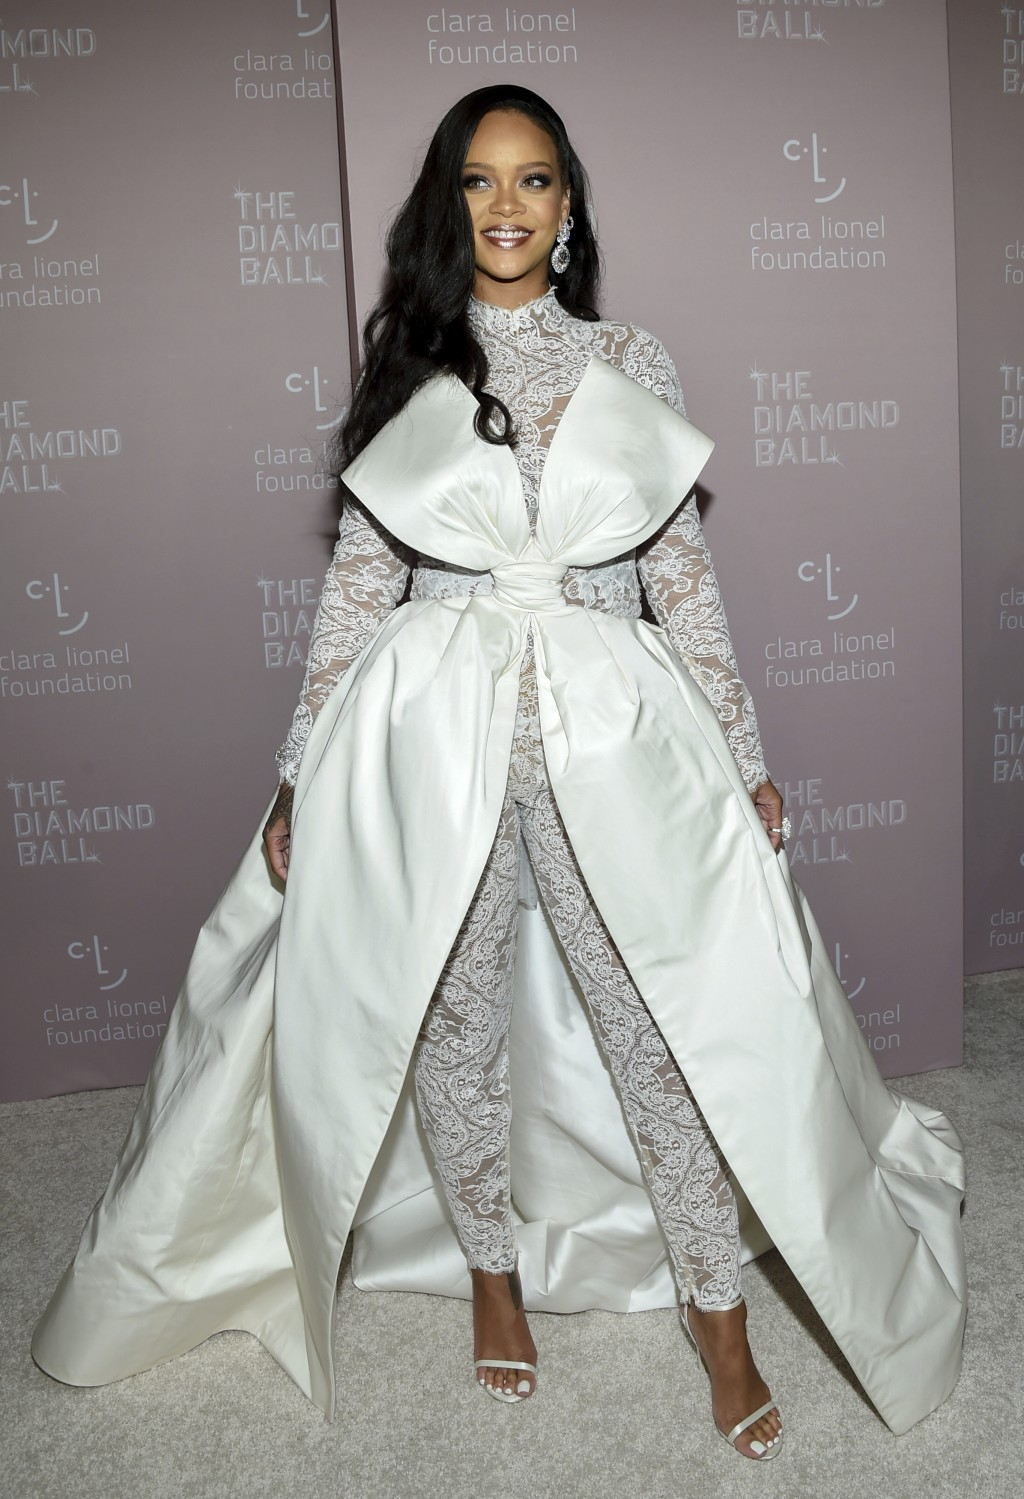 Singer Rihanna attends the 4th annual Diamond Ball at Cipriani Wall Street on Thursday, Sept. 13, 2018, in New York. (Photo by Evan Agostini/Invision/